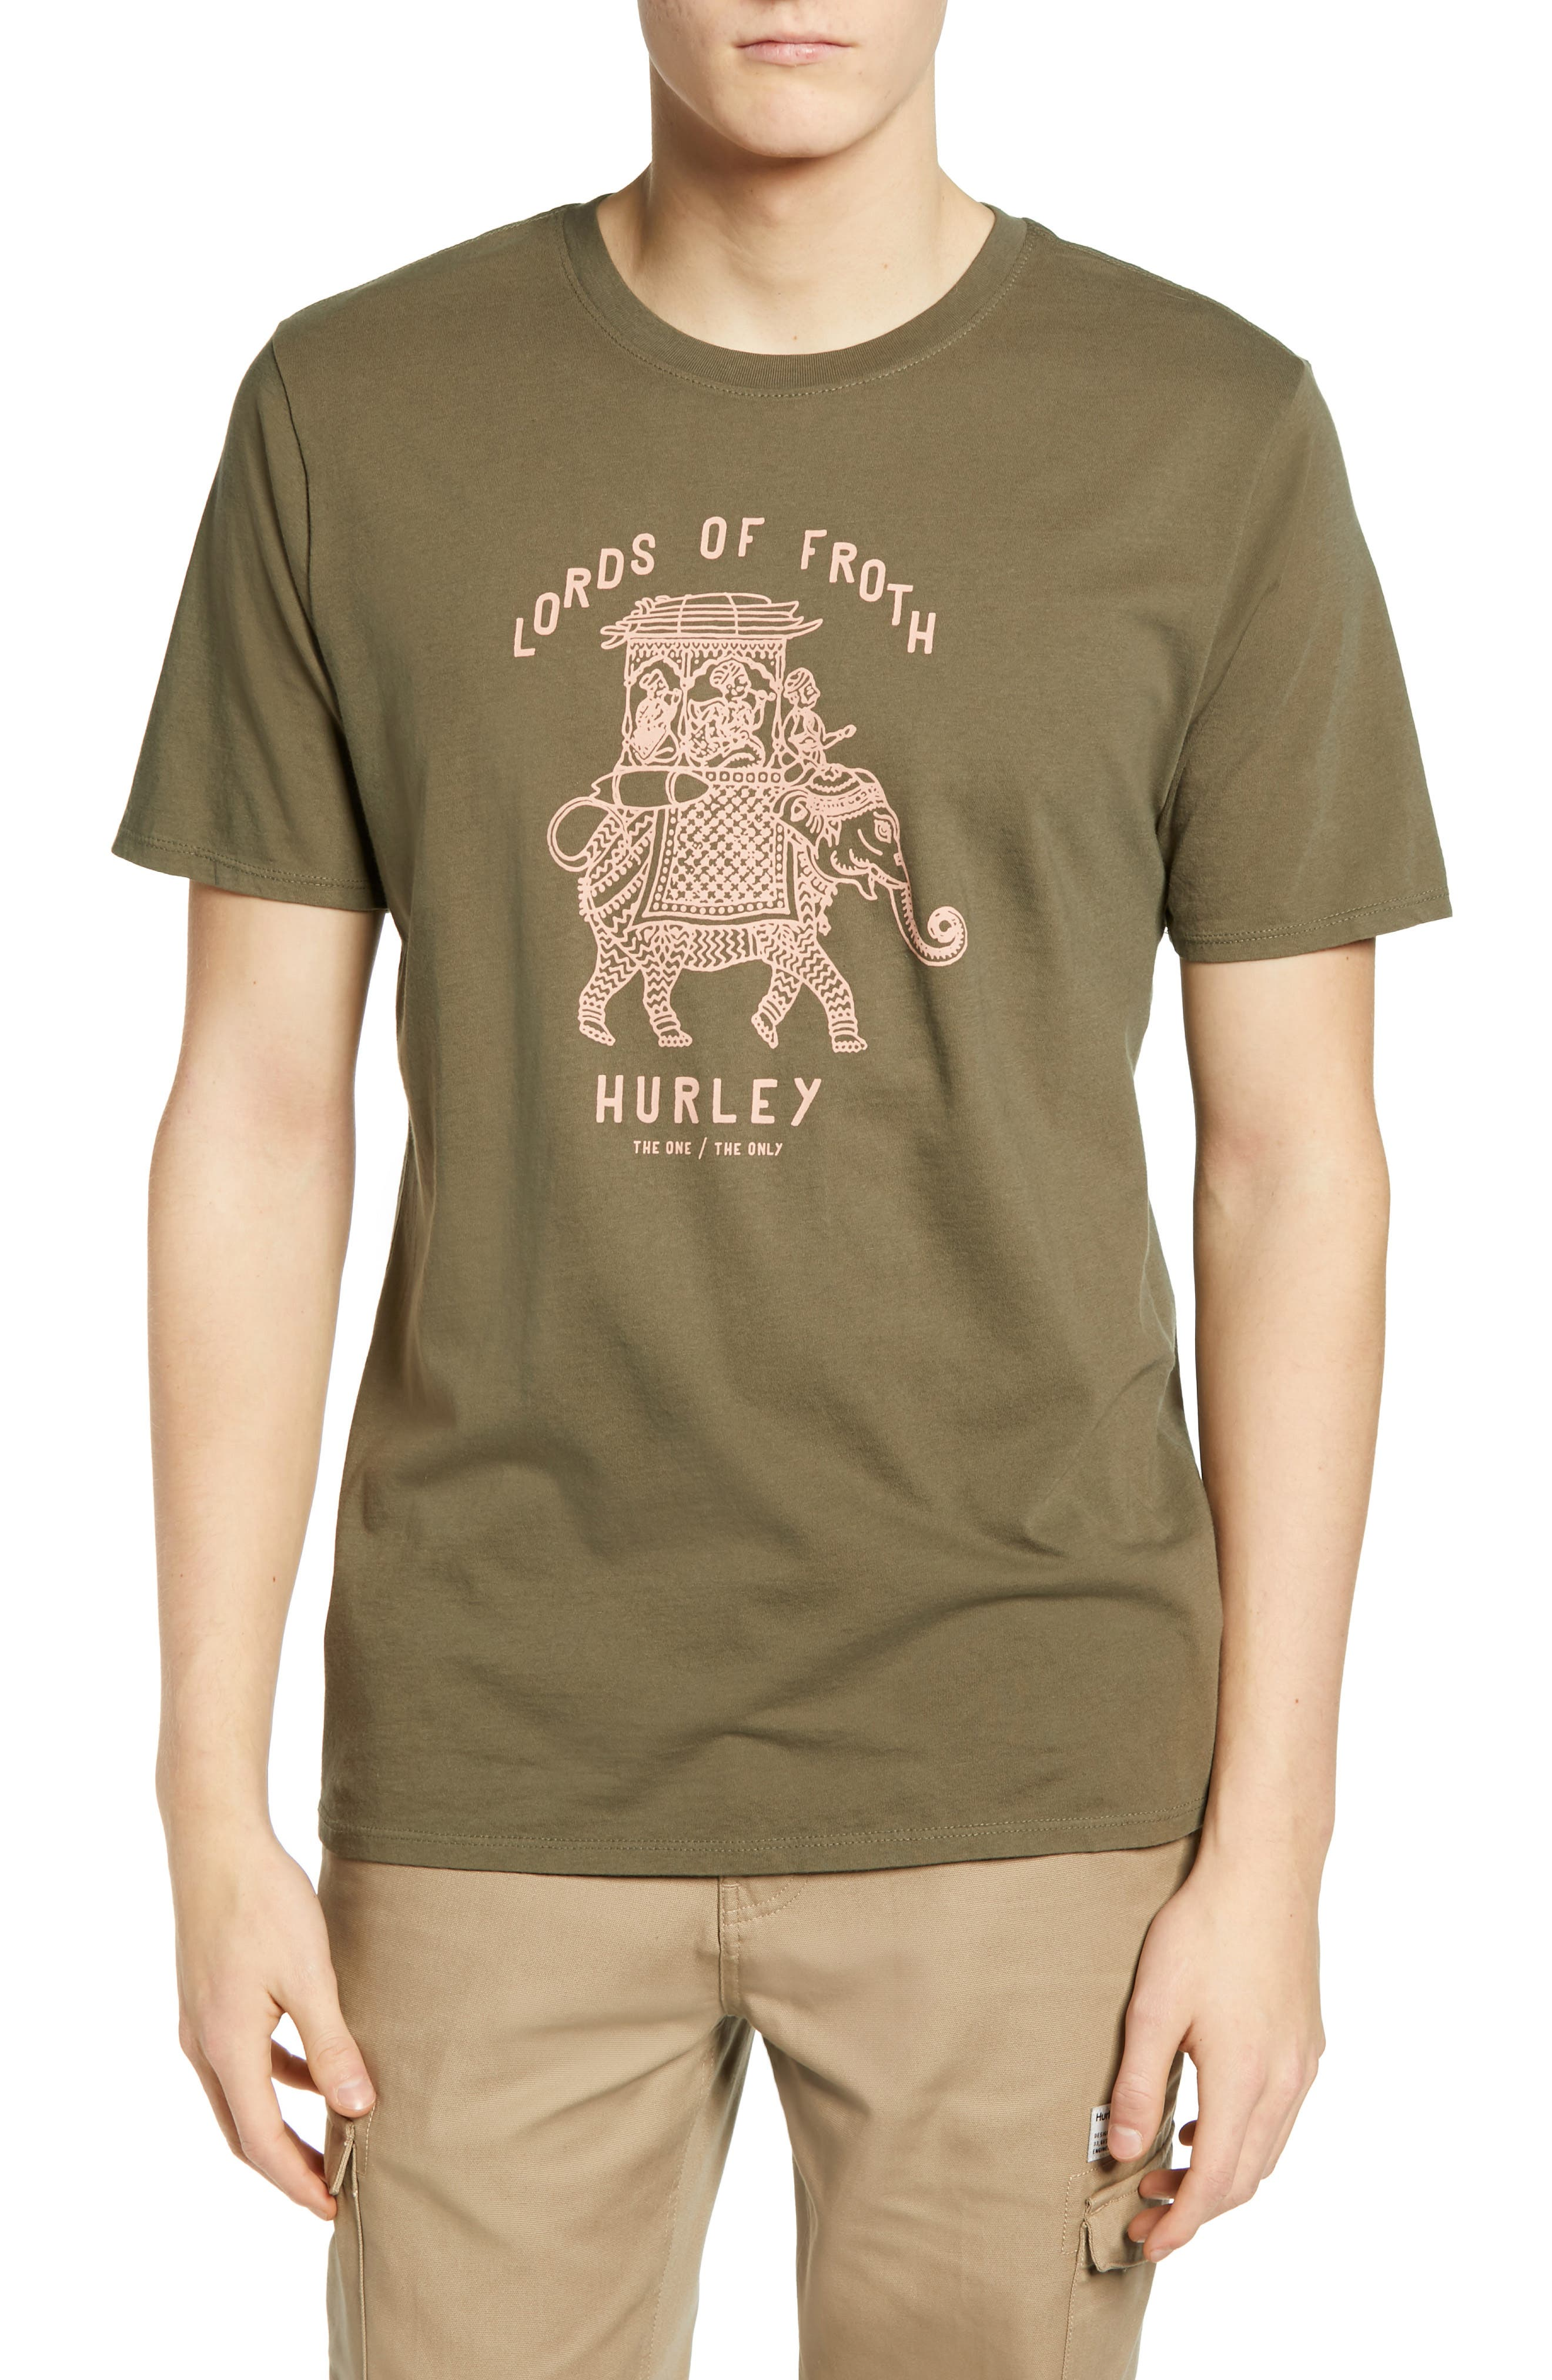 Hurley Lords Of Froth Graphic T-Shirt, Green